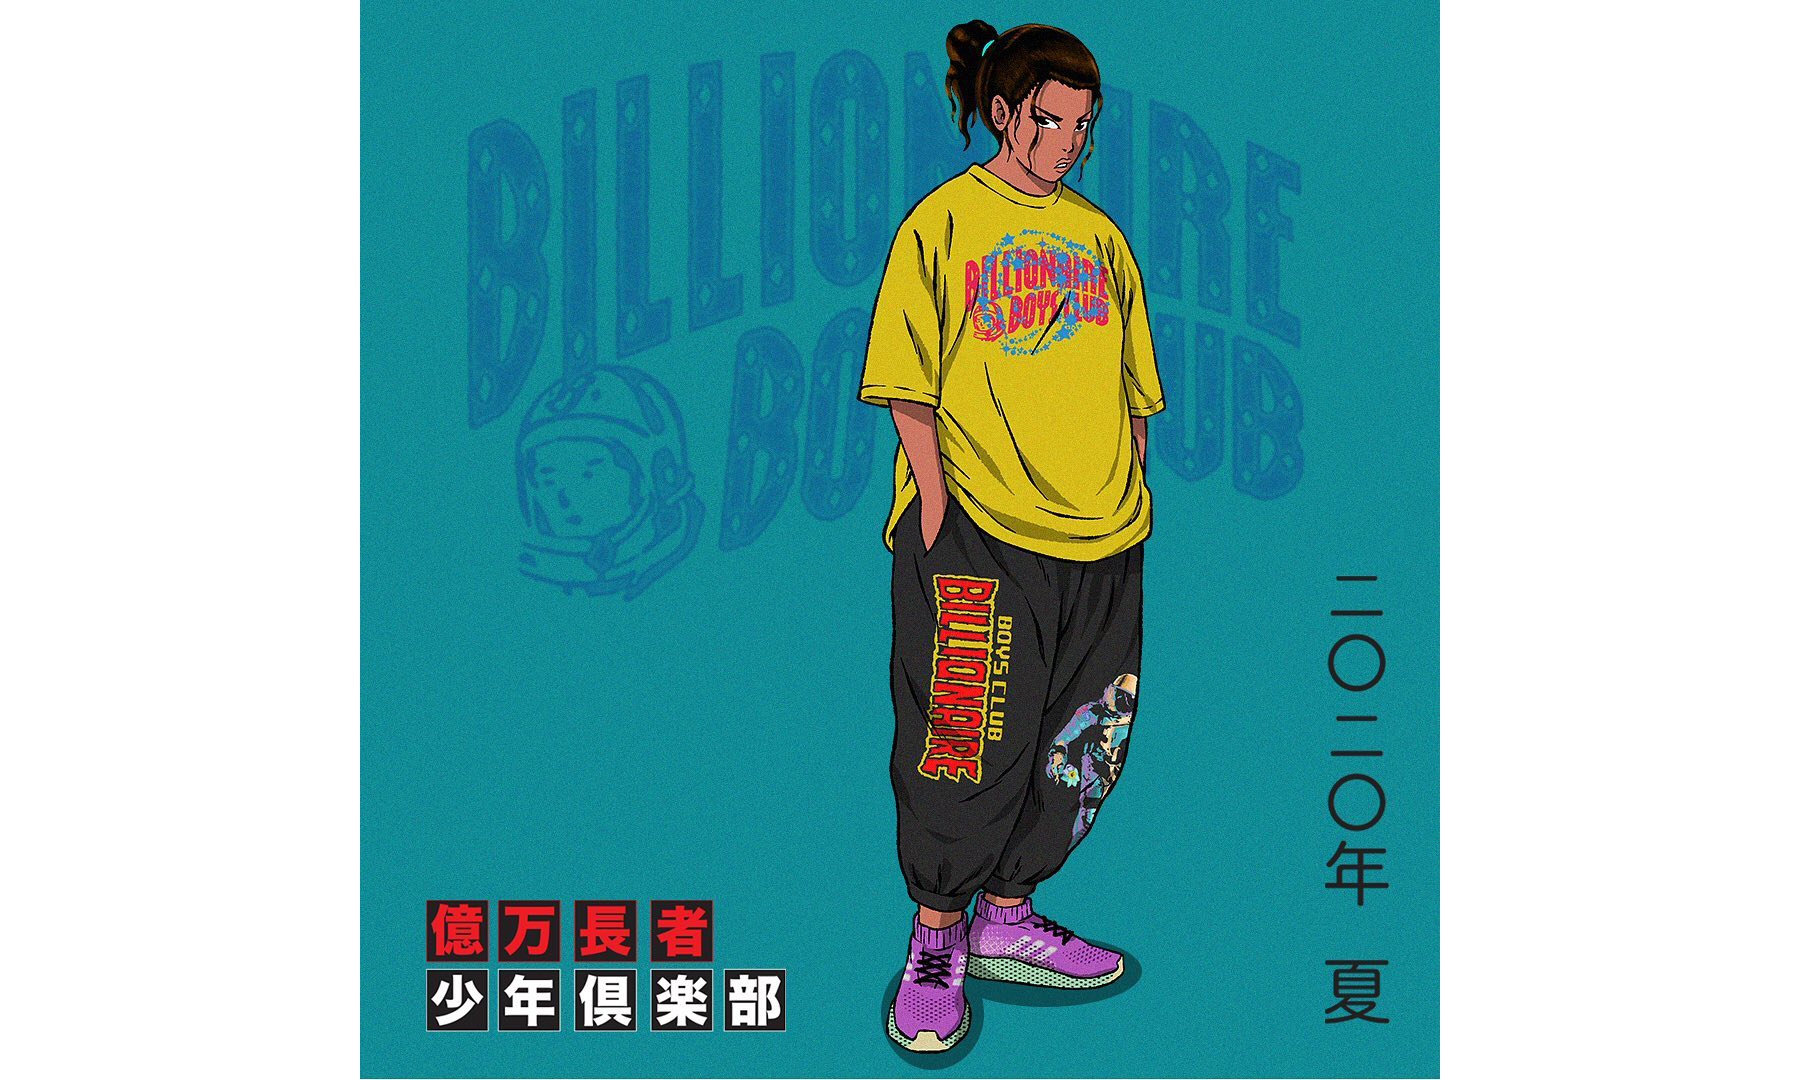 Billionaire Boys Club 发布全新 2020 夏季卡通 Lookbook